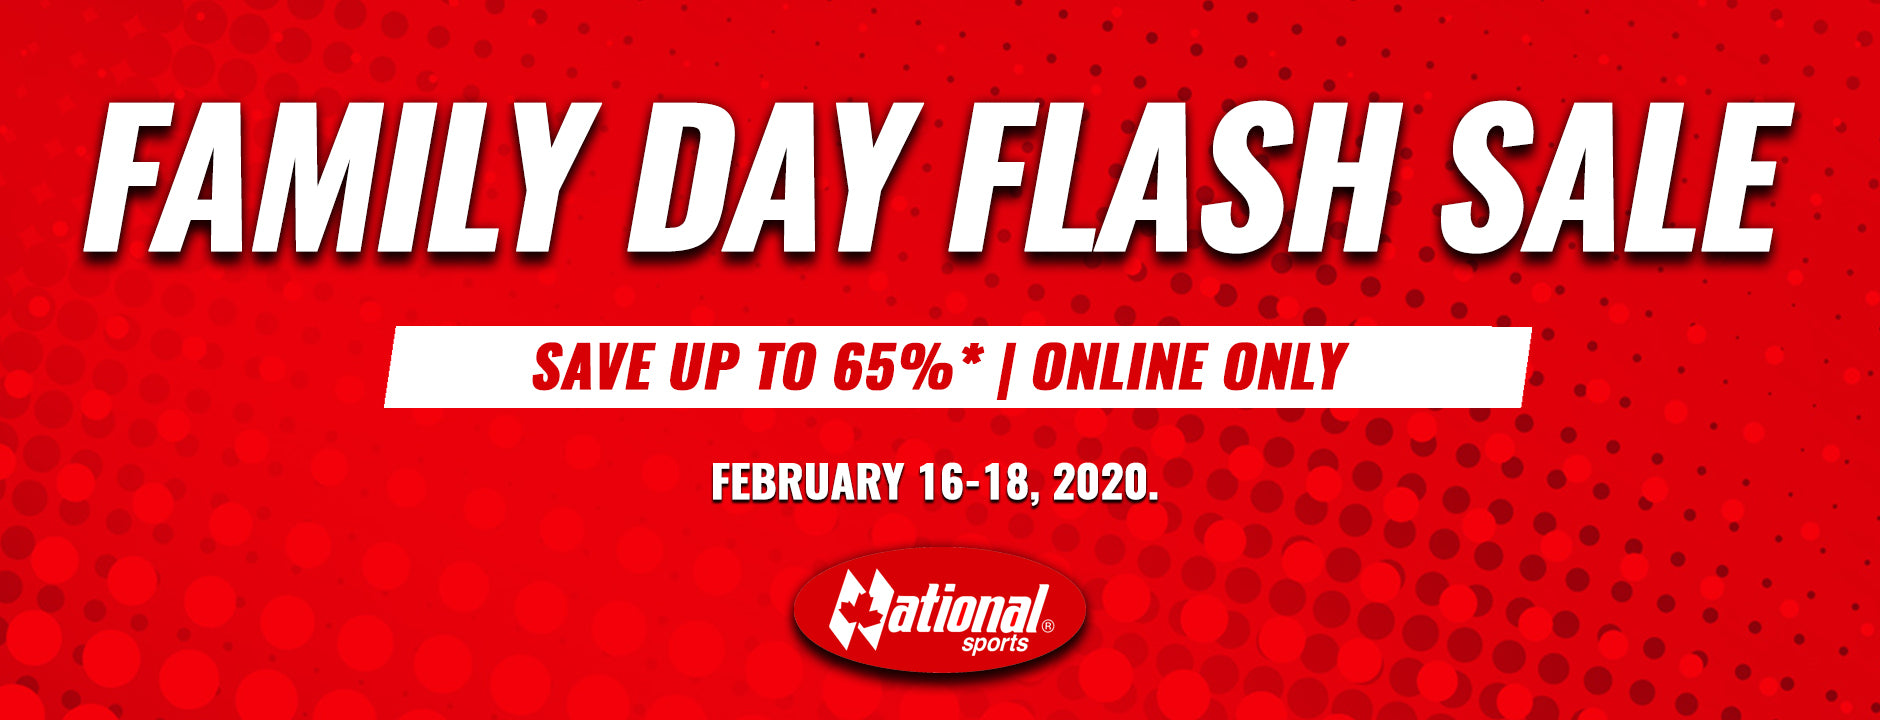 Family Day Flash Sale